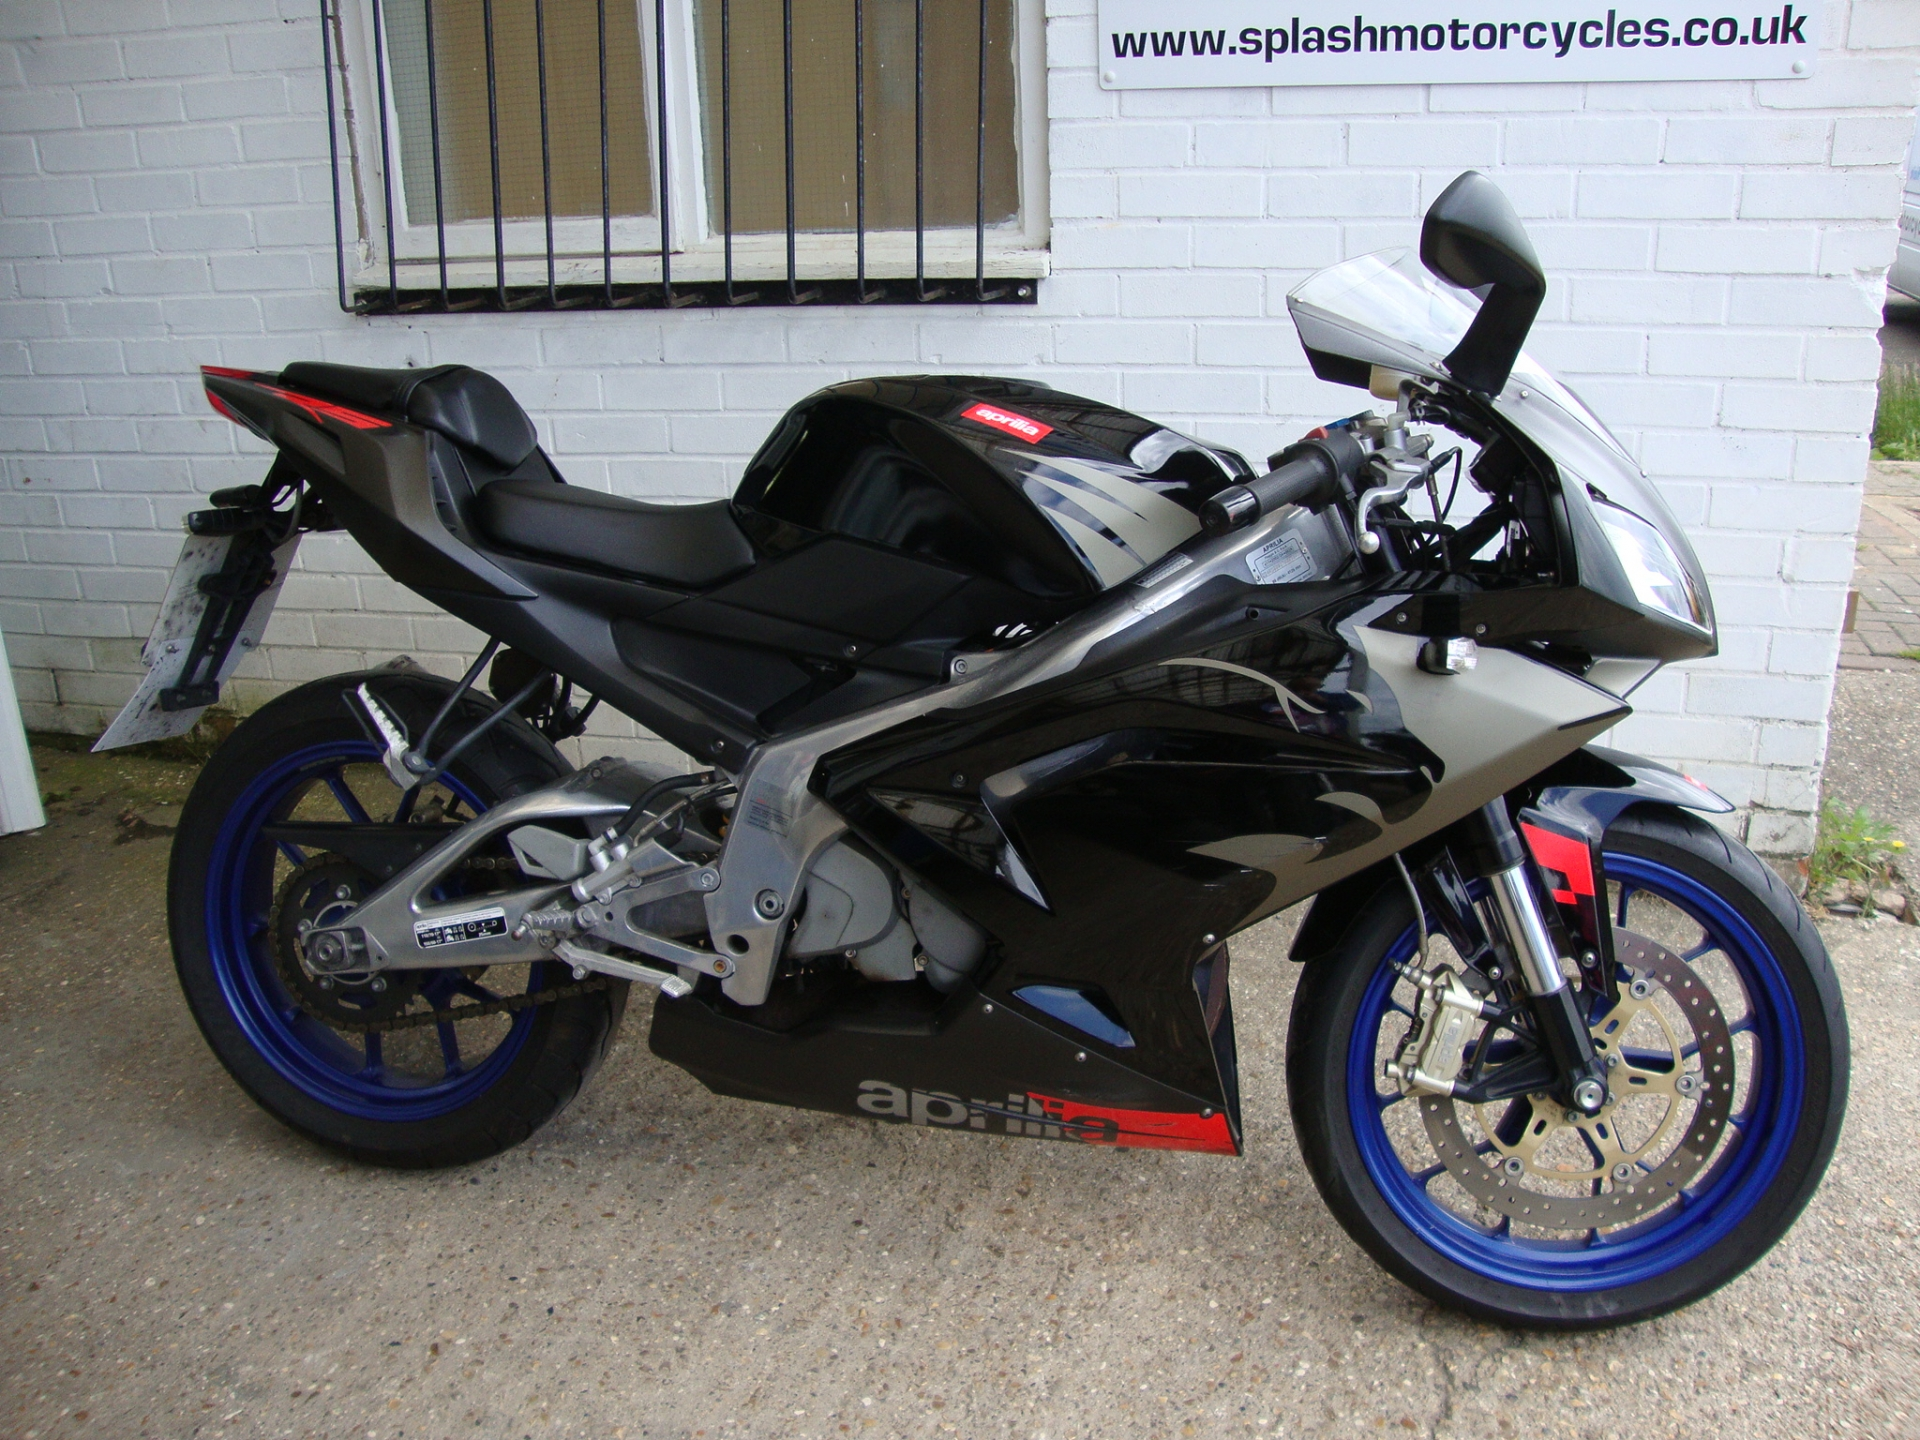 2007 aprilia rx 125 pics specs and information. Black Bedroom Furniture Sets. Home Design Ideas